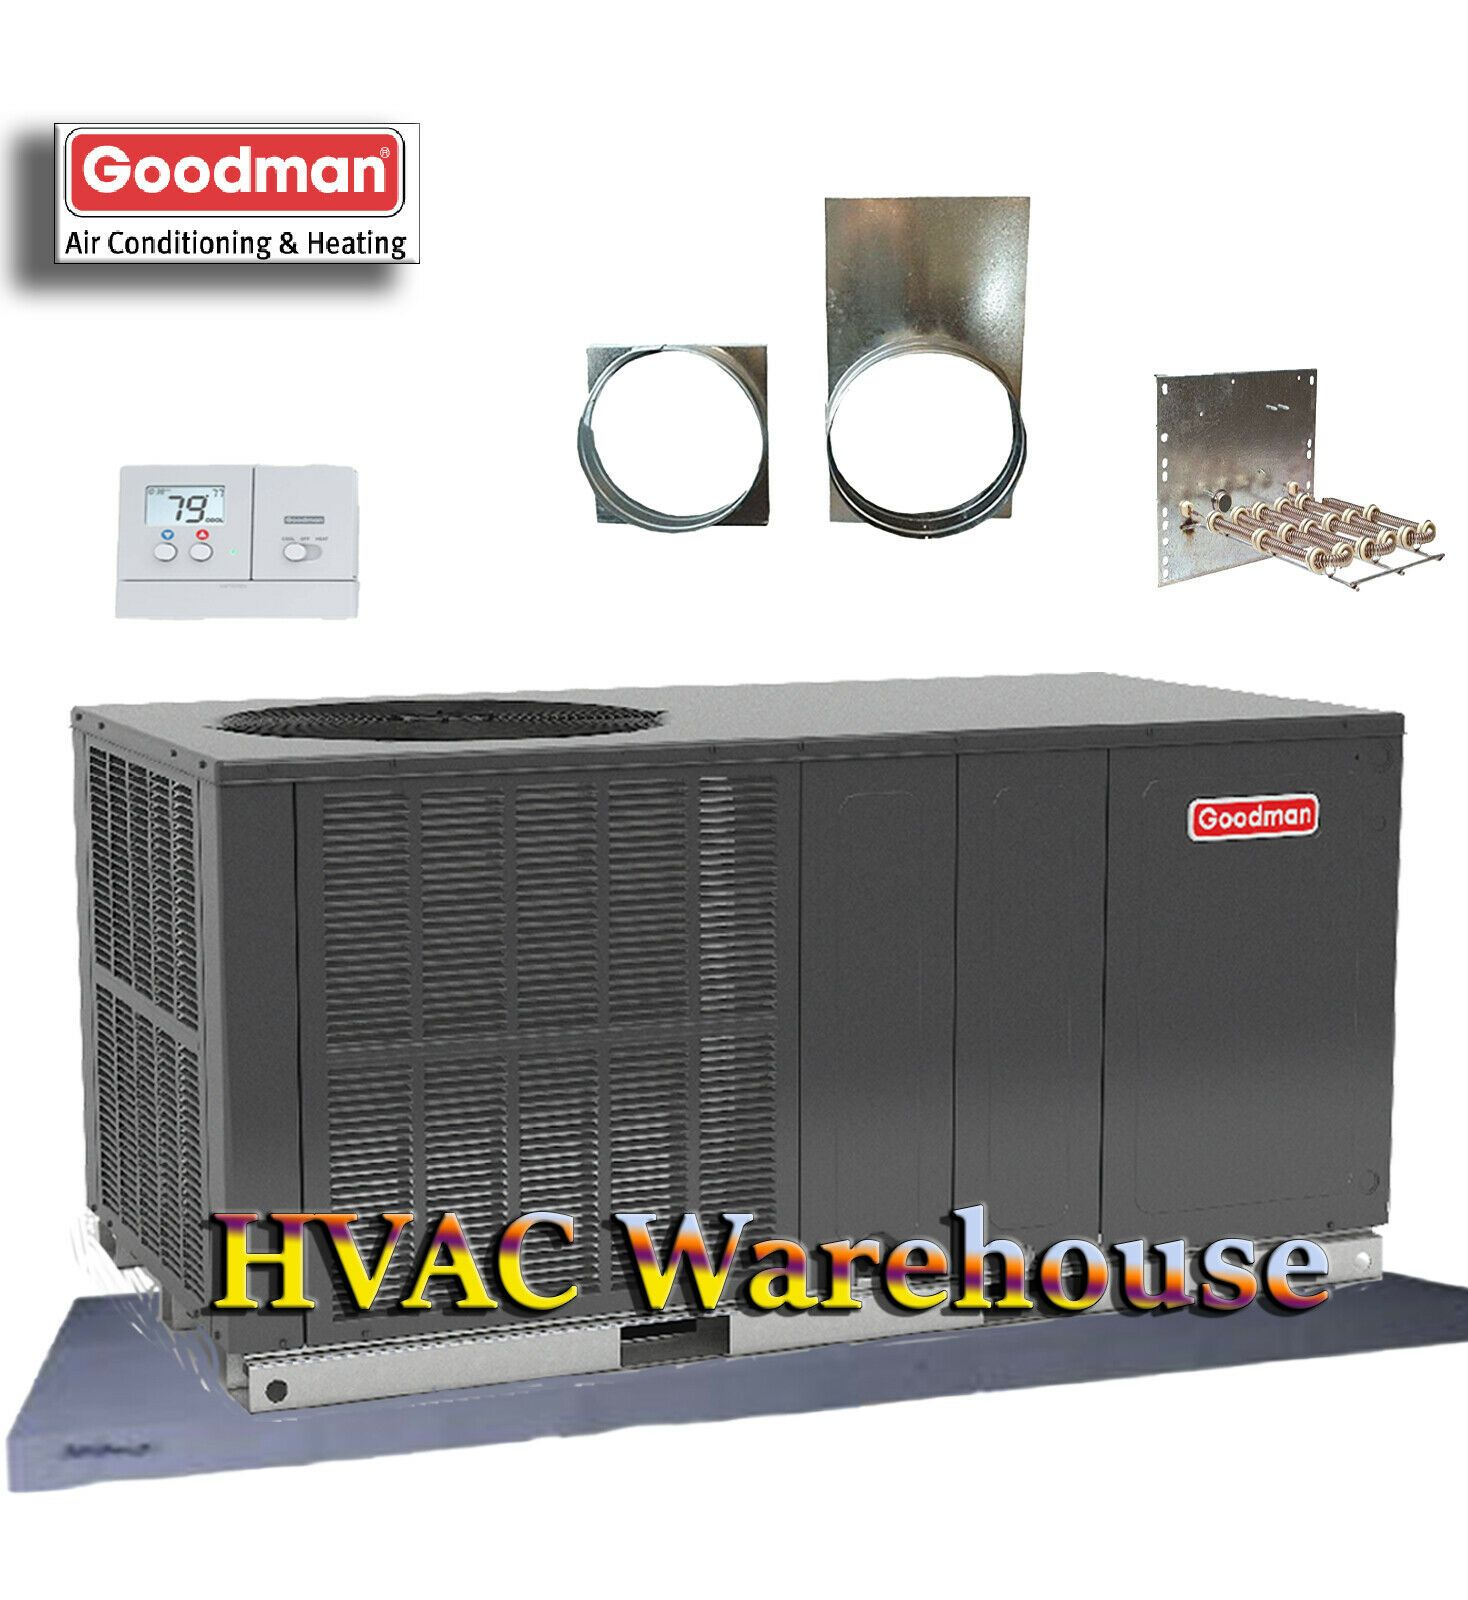 Goodman Package Unit Locker Storage Heat Pump The Unit